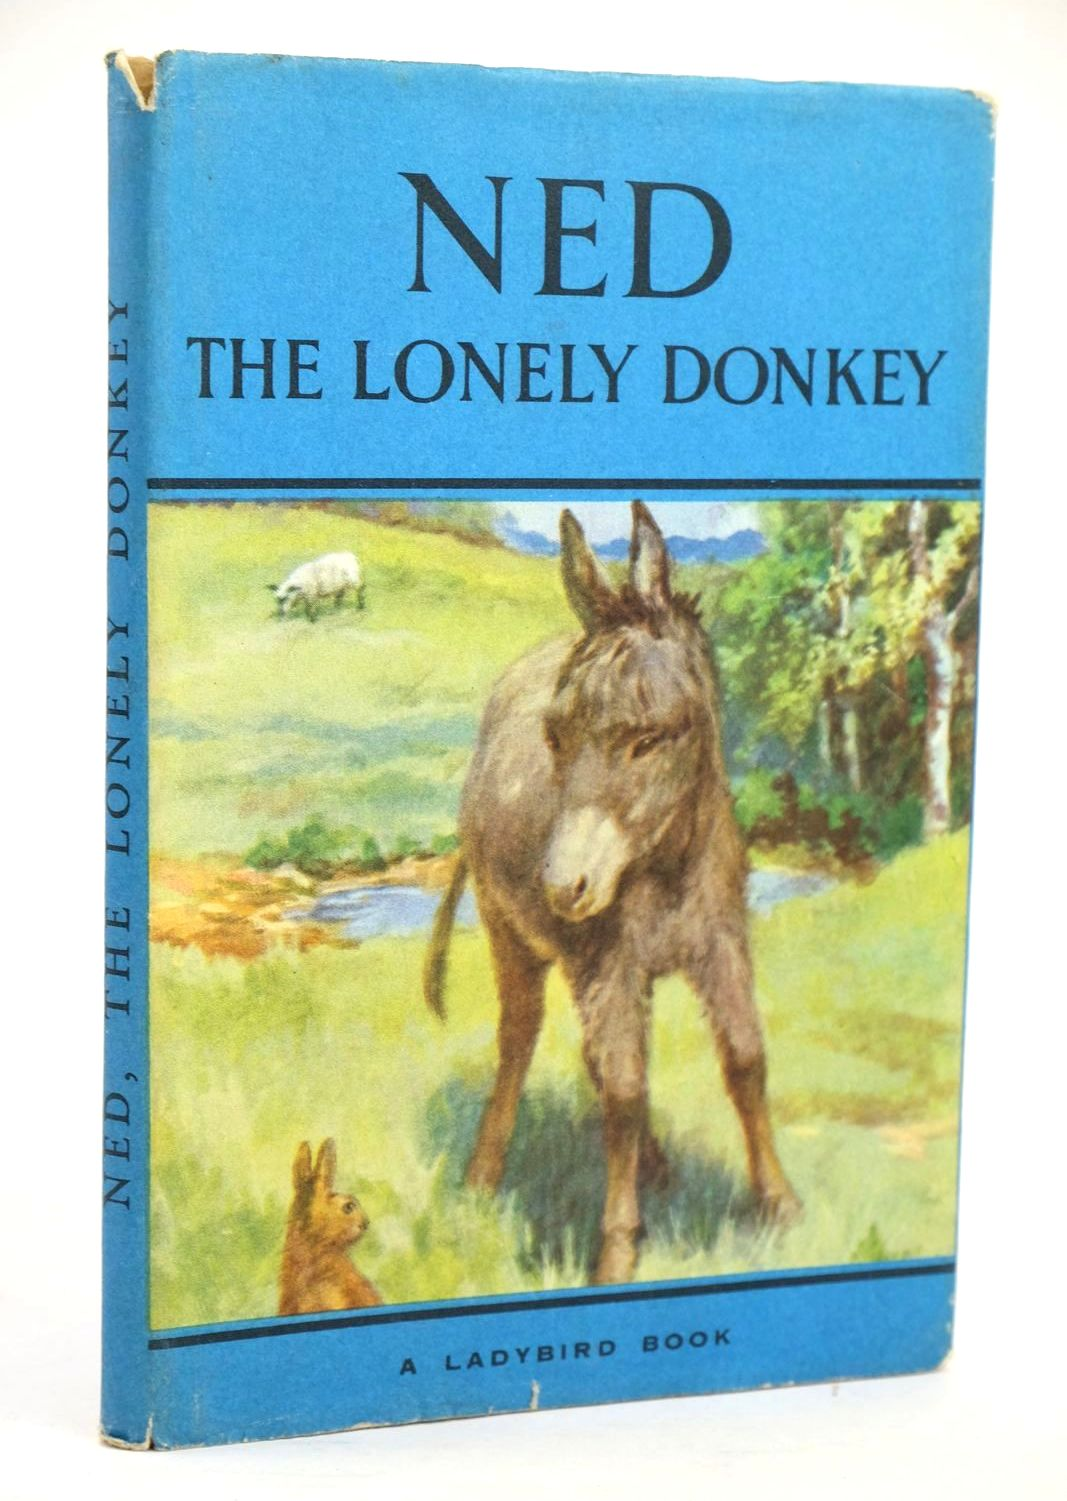 Photo of NED THE LONELY DONKEY written by Barr, Noel illustrated by Hickling, P.B. published by Wills & Hepworth Ltd. (STOCK CODE: 1319436)  for sale by Stella & Rose's Books